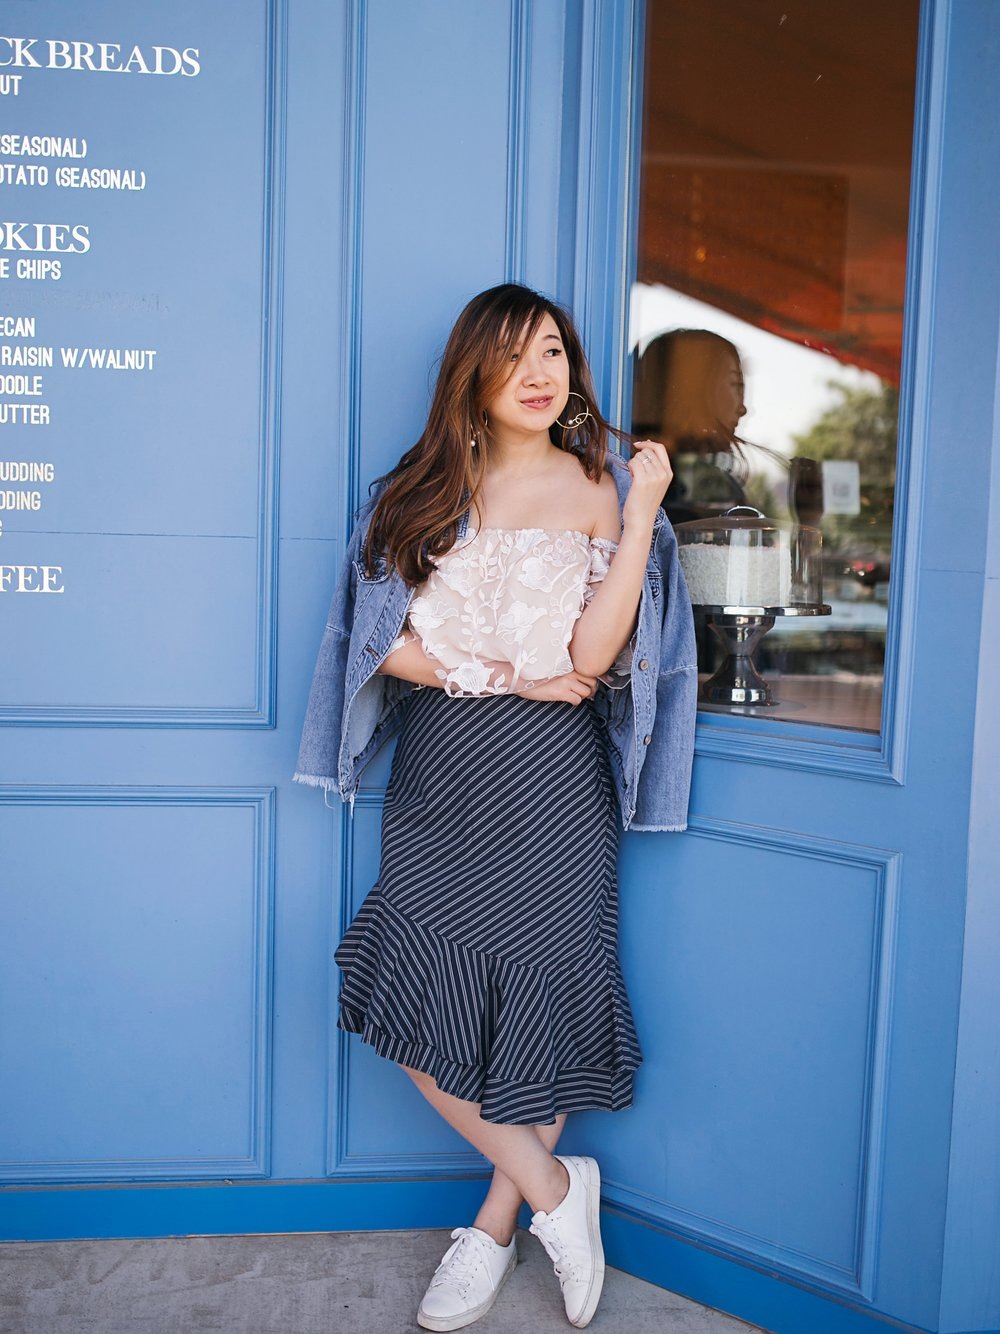 Top from  Tobi ; skirt from  Joie ; sneakers from  Frye . Photo taken by Angie Garcia.